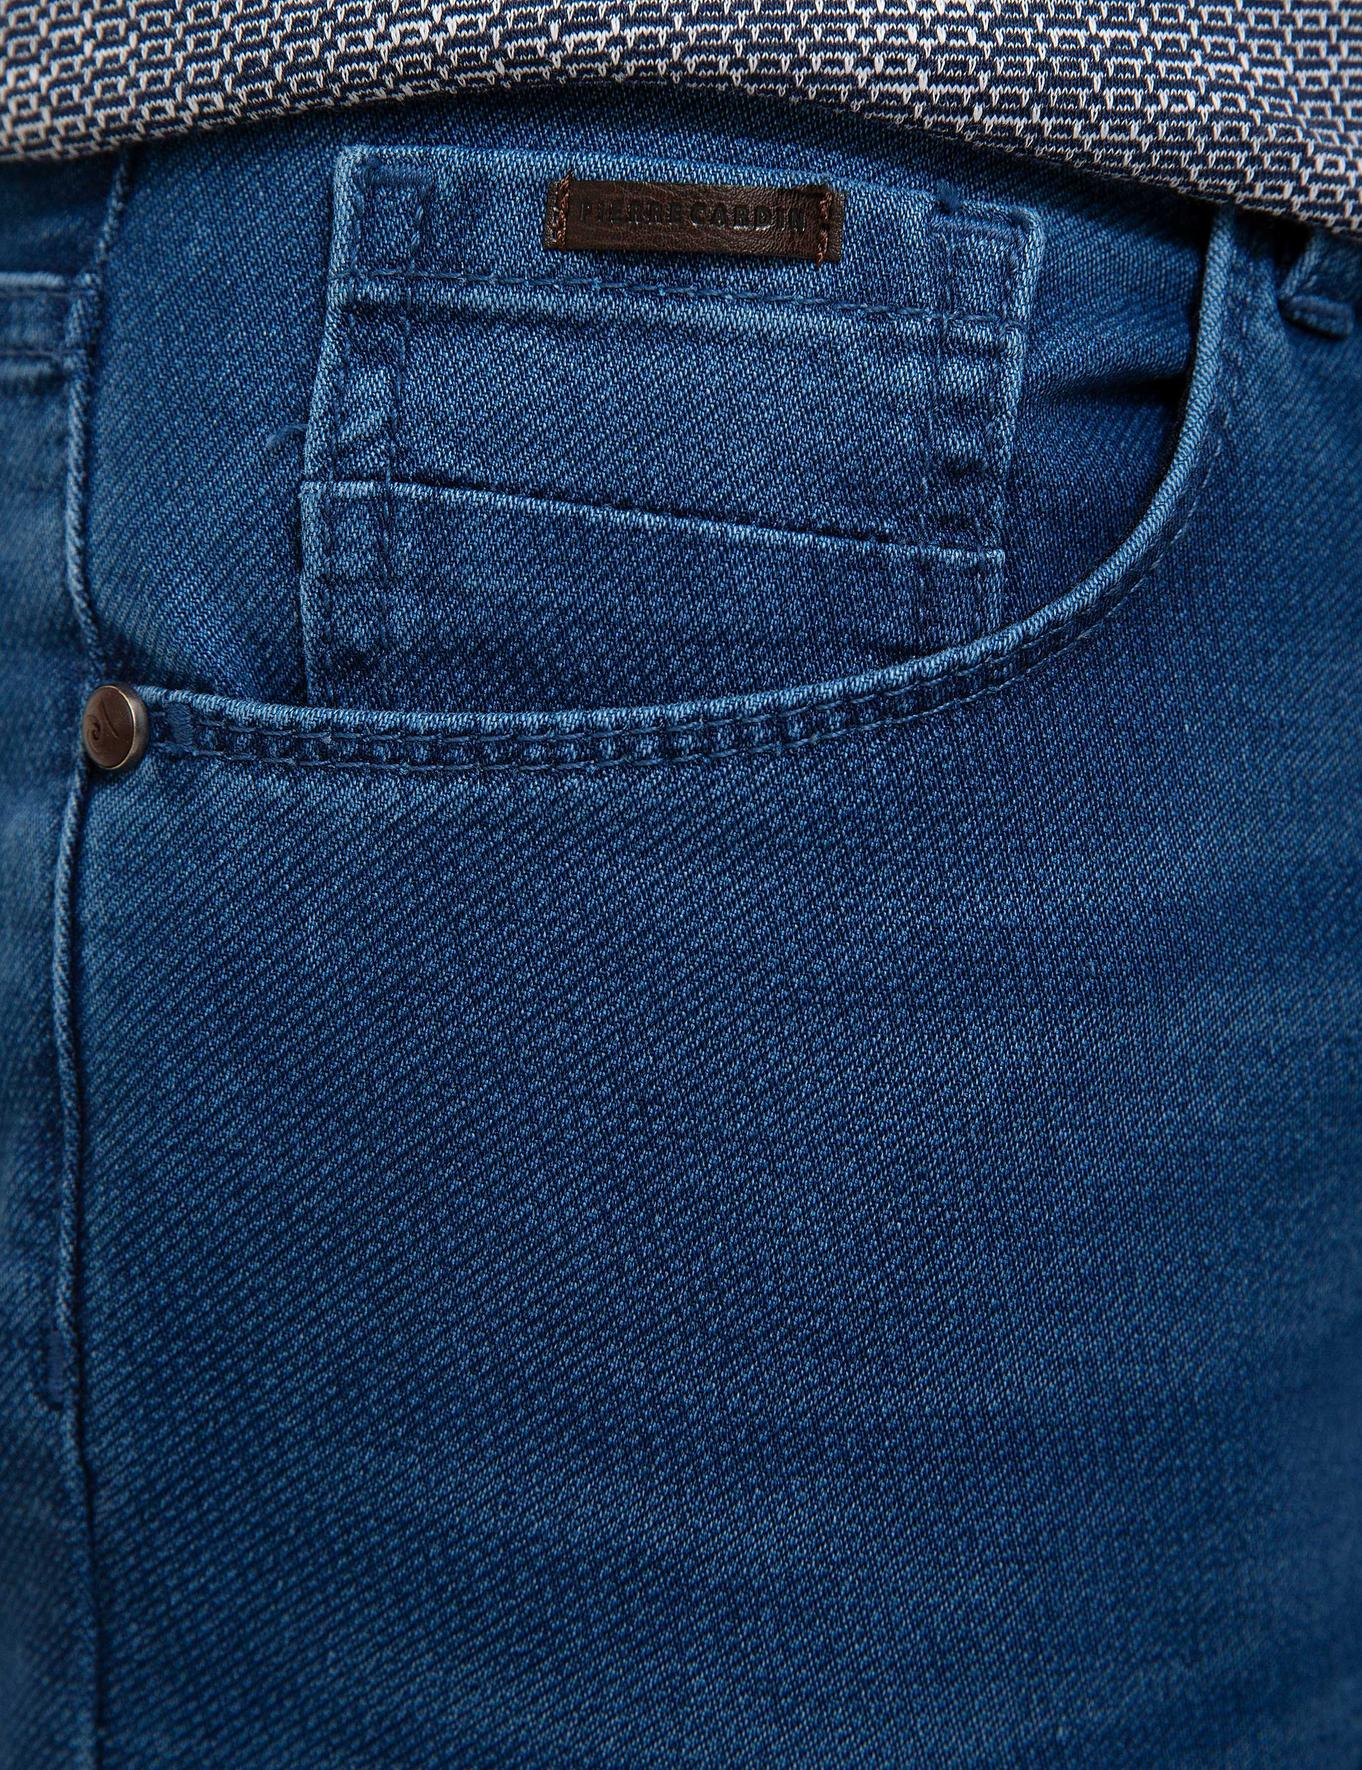 Lacivert Denim Pantolon